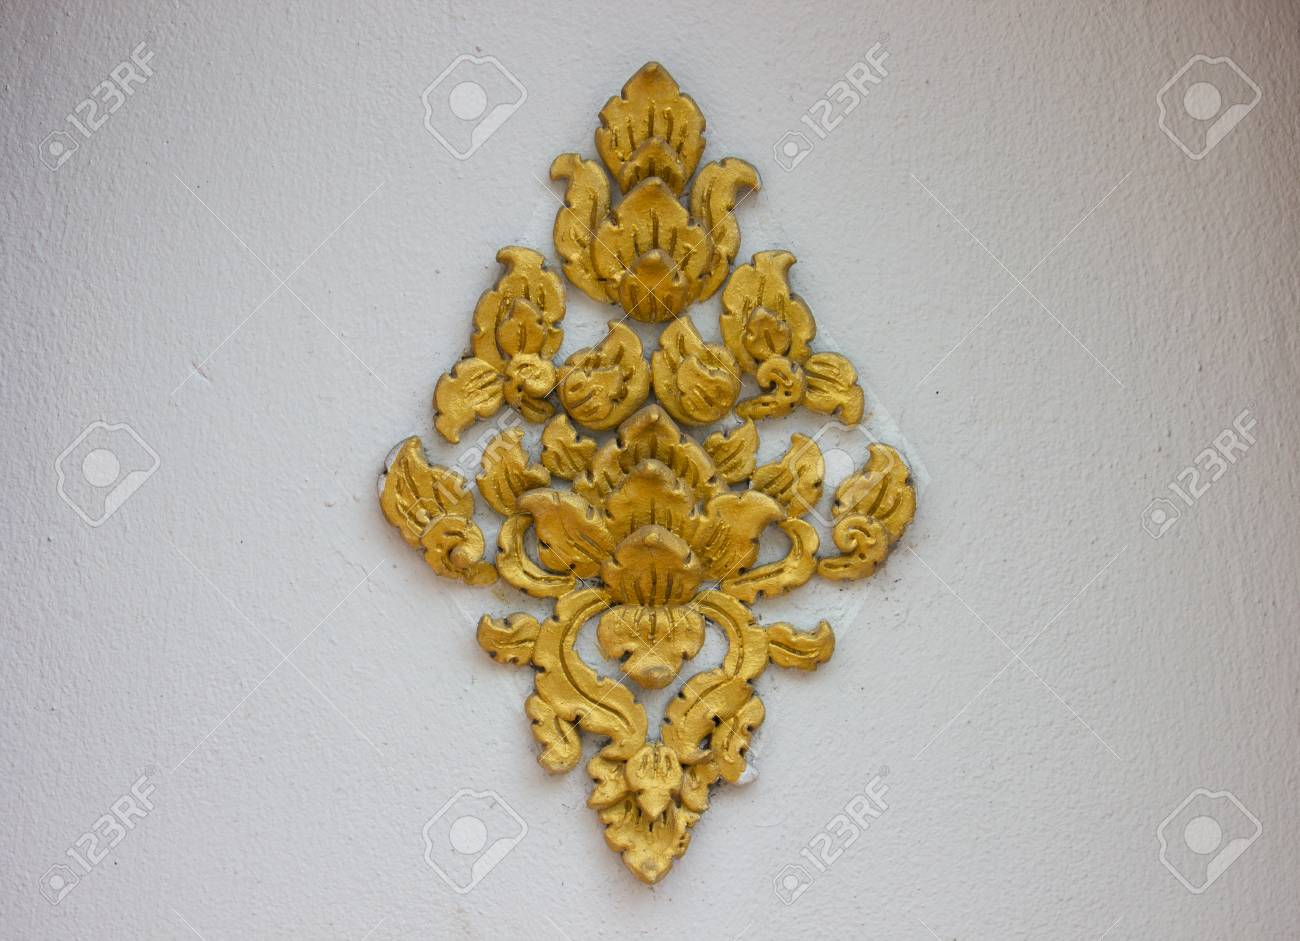 The Art Of Handmade Asian Golden Sculpture Tracery For Decorating ...